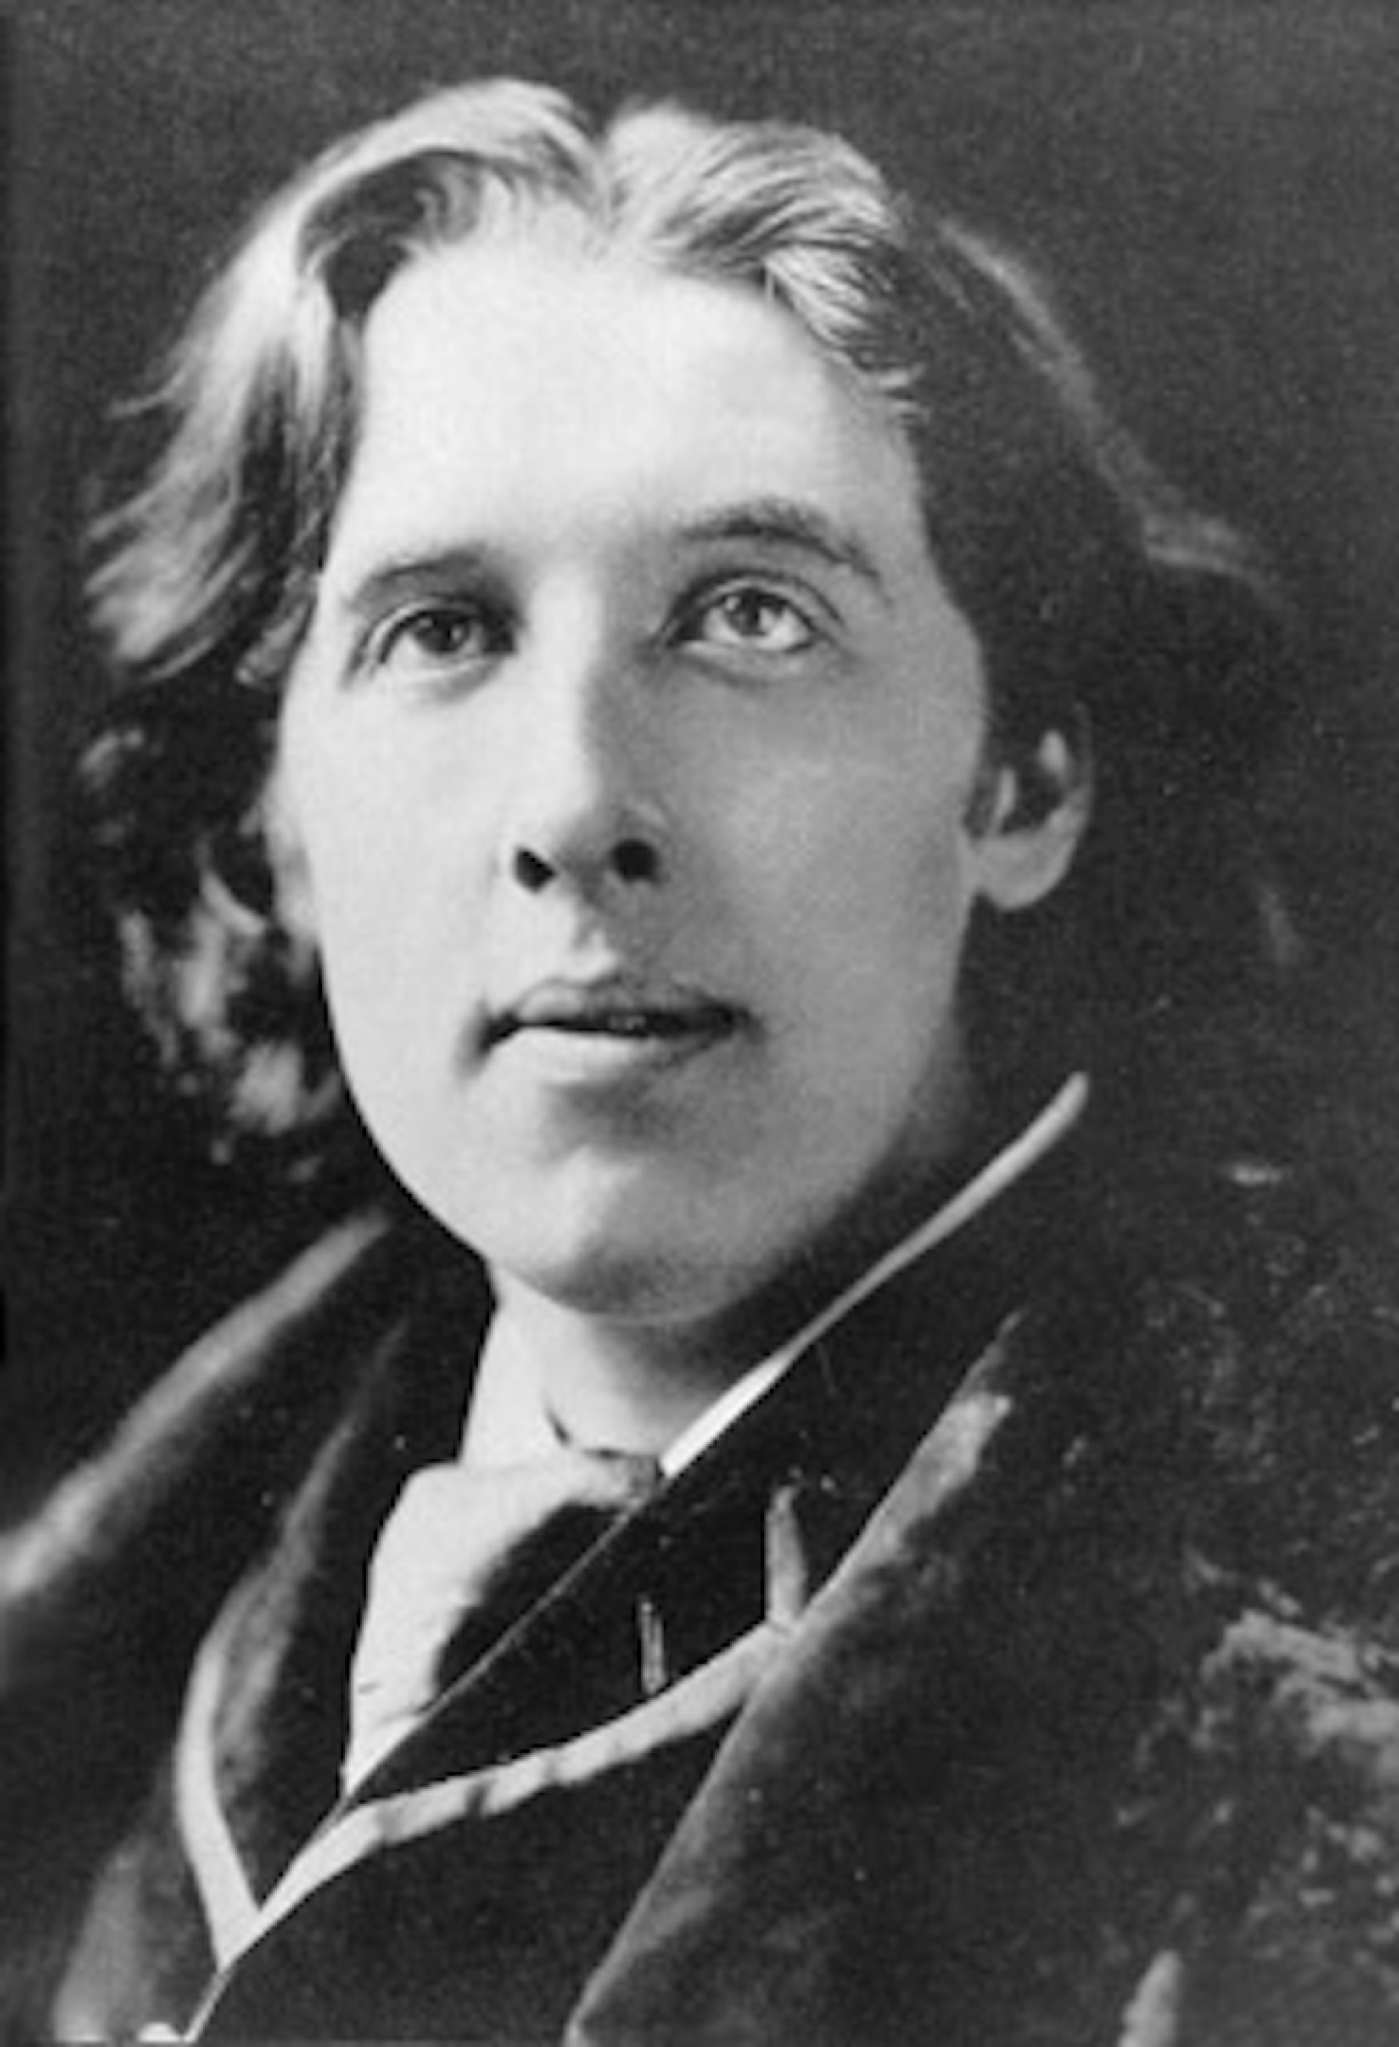 a biography of oscar wilde an irish author poet and playwright Writer and poet oscar wilde full name: oscar wilde nationality: irish  his novel  the picture of dorian gray, his plays, and his imprisonment and early death.